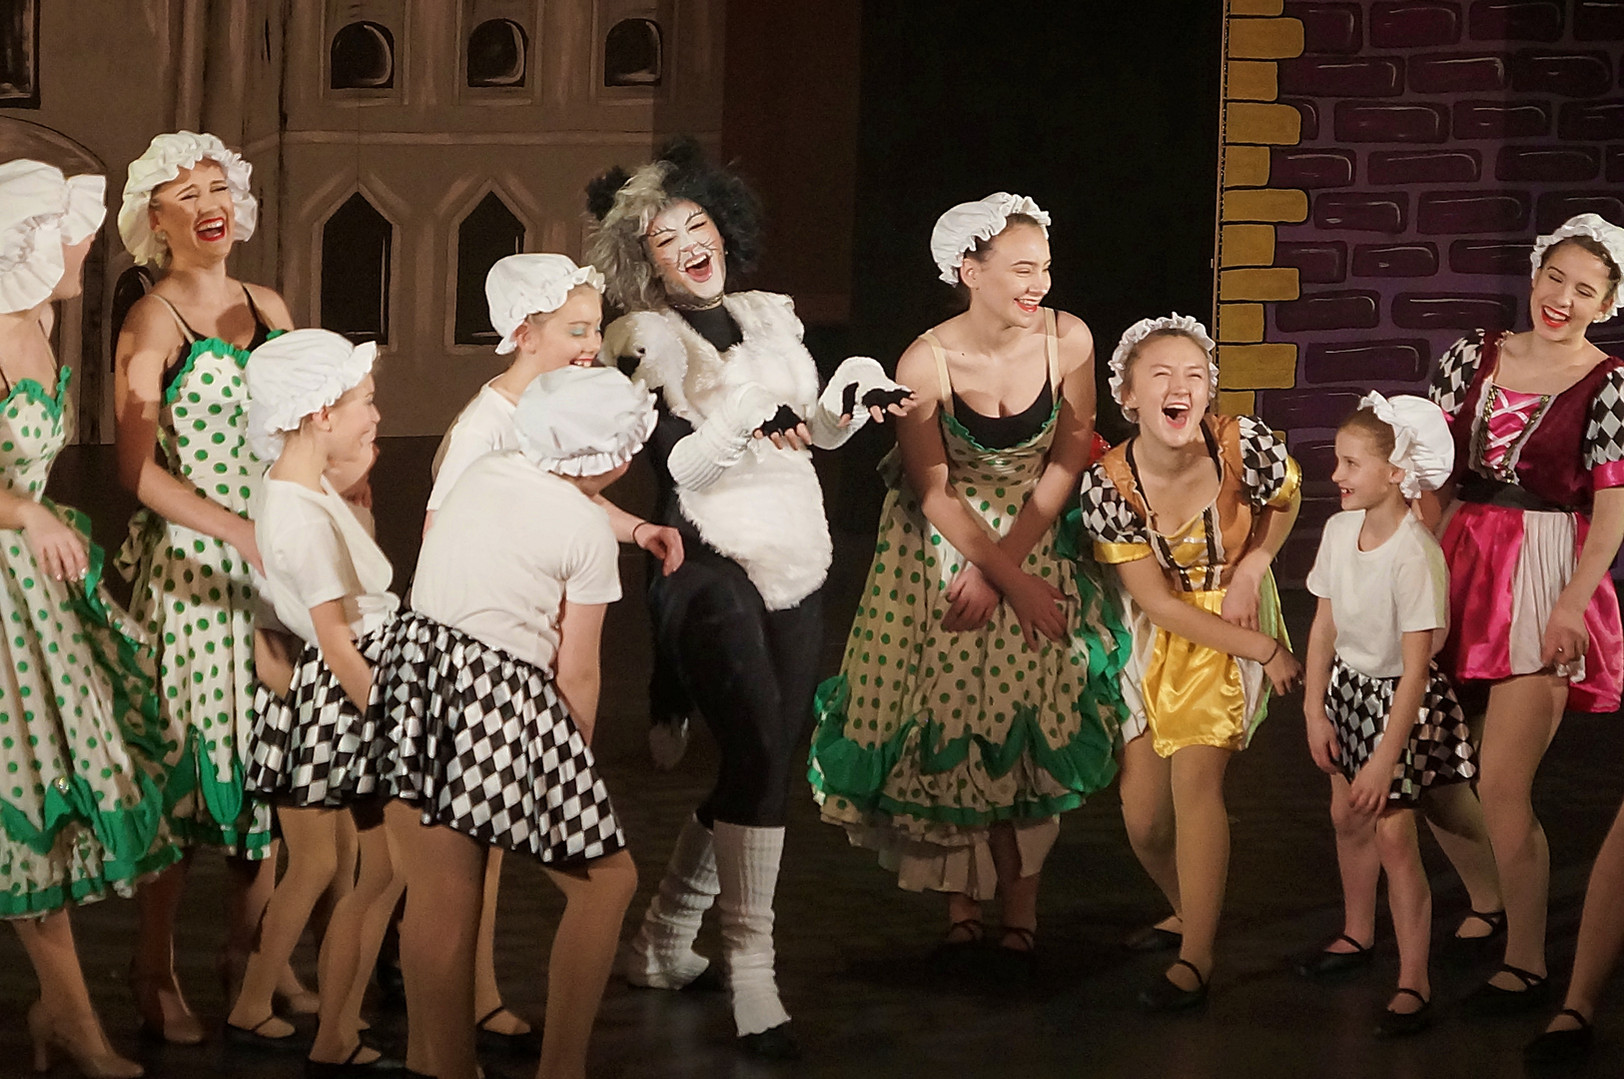 Charley The Cat & Friends - Dick Whittington